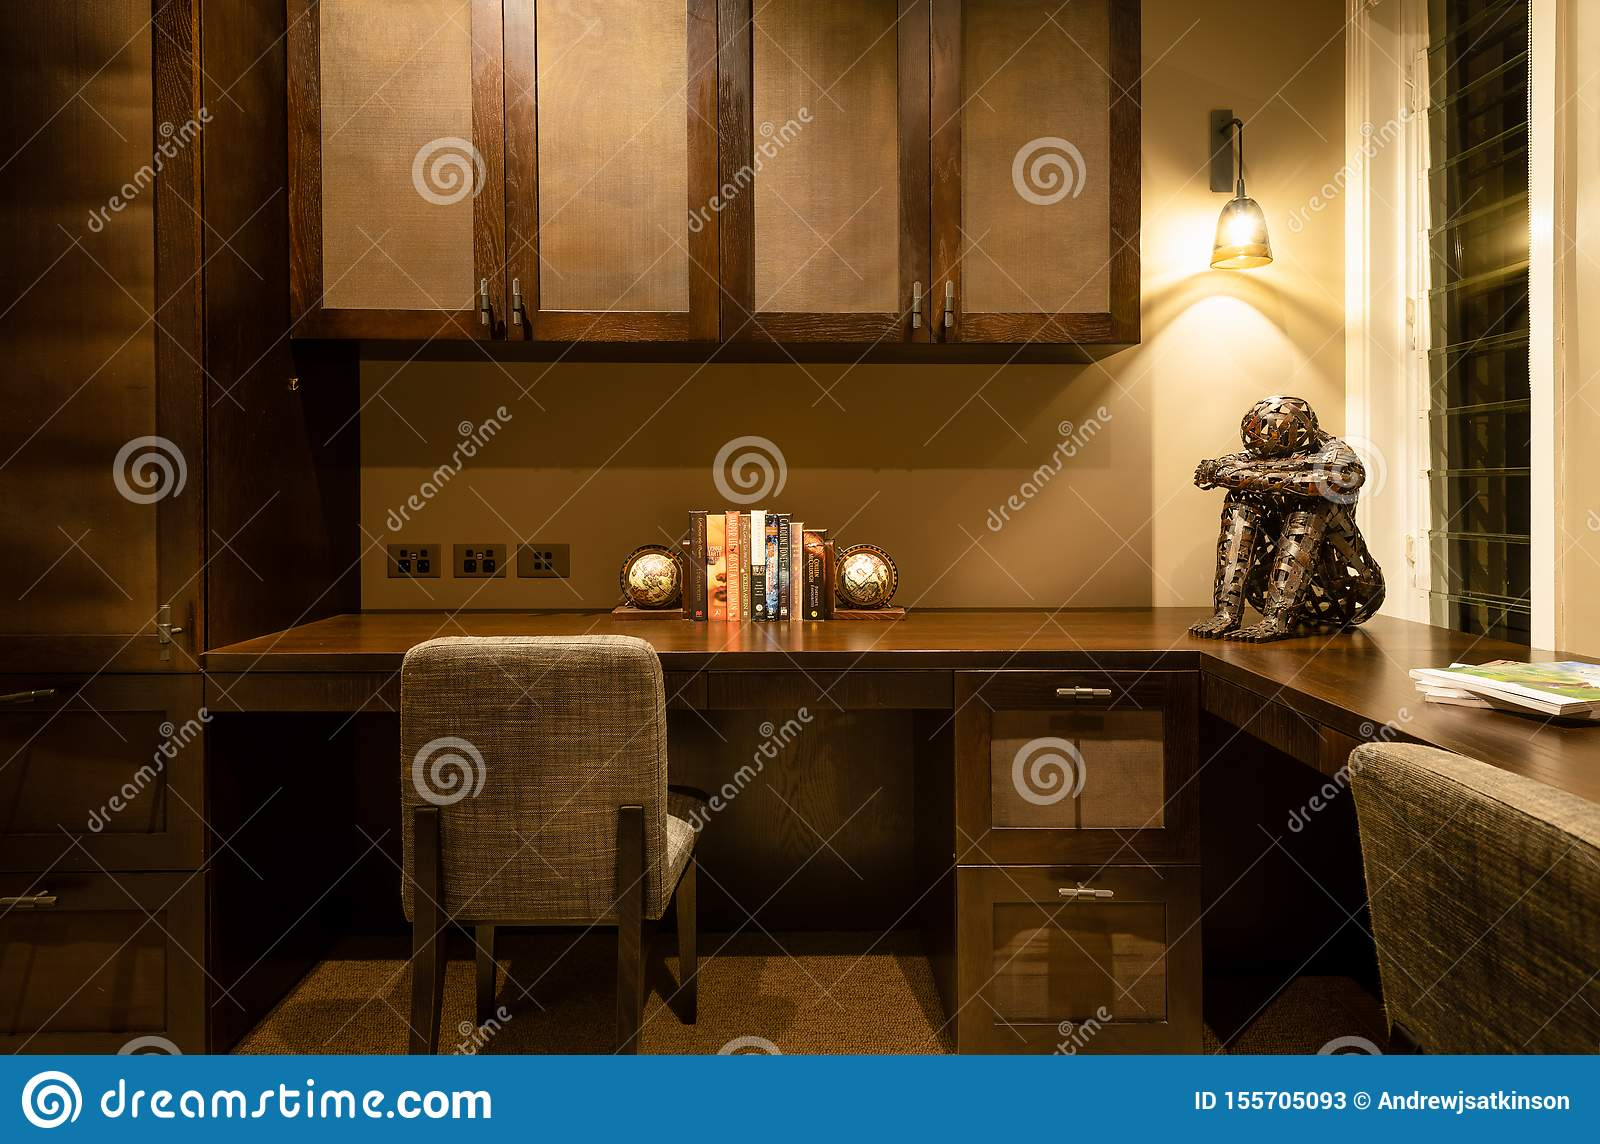 Home Office Space Or Study With Desks Chairs Lights Cabinets And Furnishings Editorial Stock Photo Image Of Home Cupboards 155705093